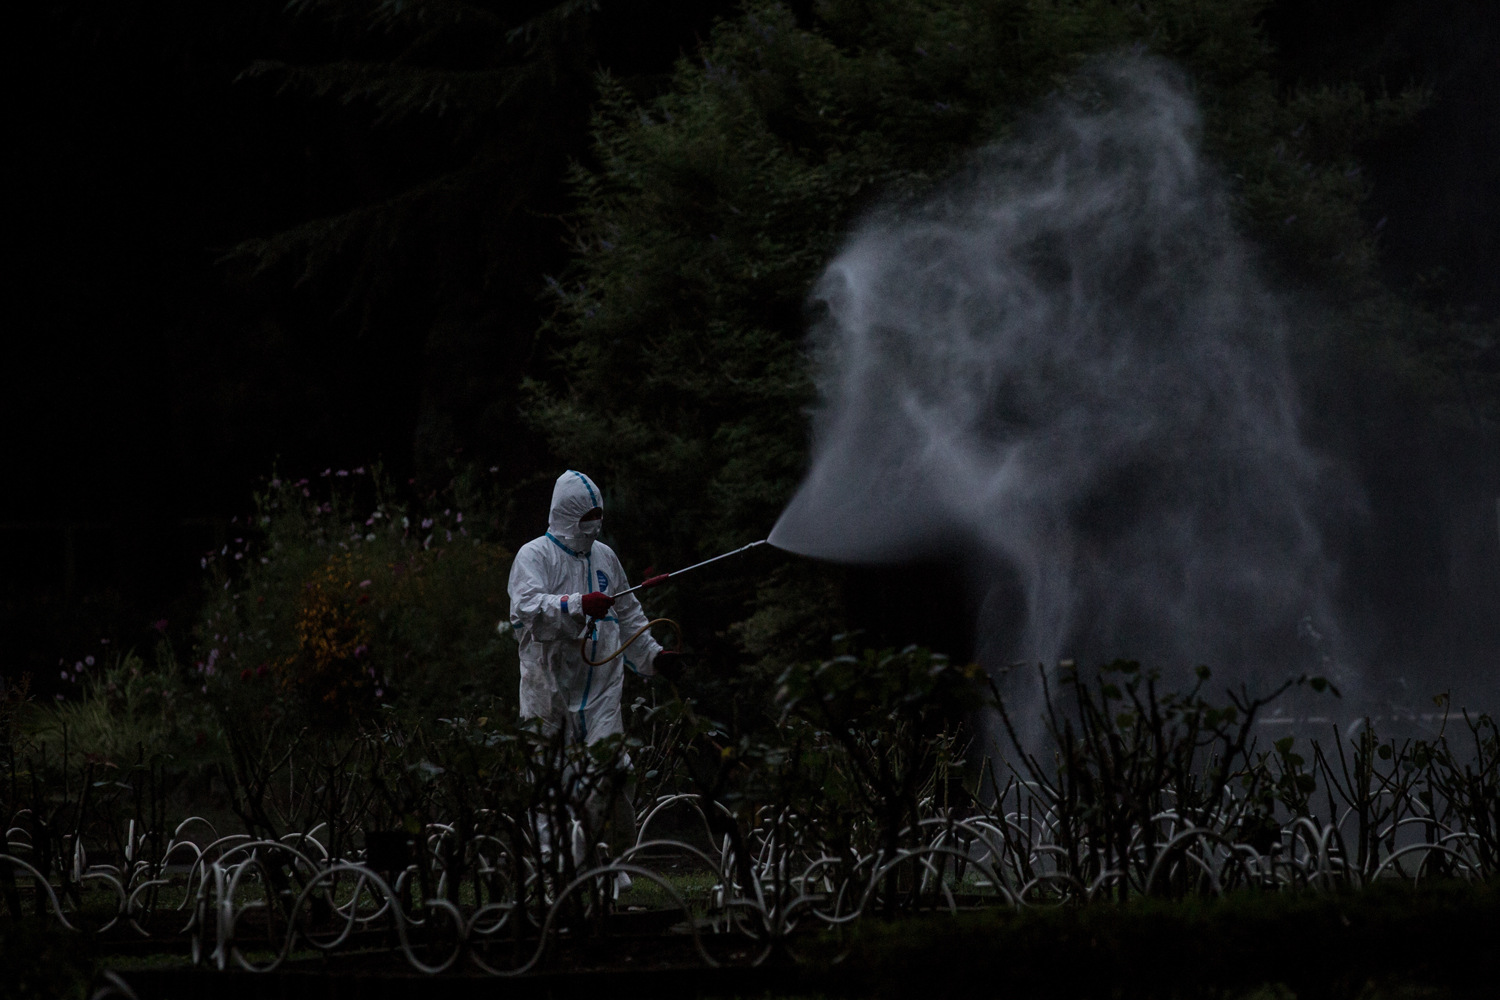 Aug. 28, 2014. A workman sprays pesticide in Yoyogi Park in Tokyo, Japan. Sections of Yoyogi Park were closed to the public today as they underwent  fumigation after three people were diagnosed with dengue fever after suffering mosquitoe bites in the park.